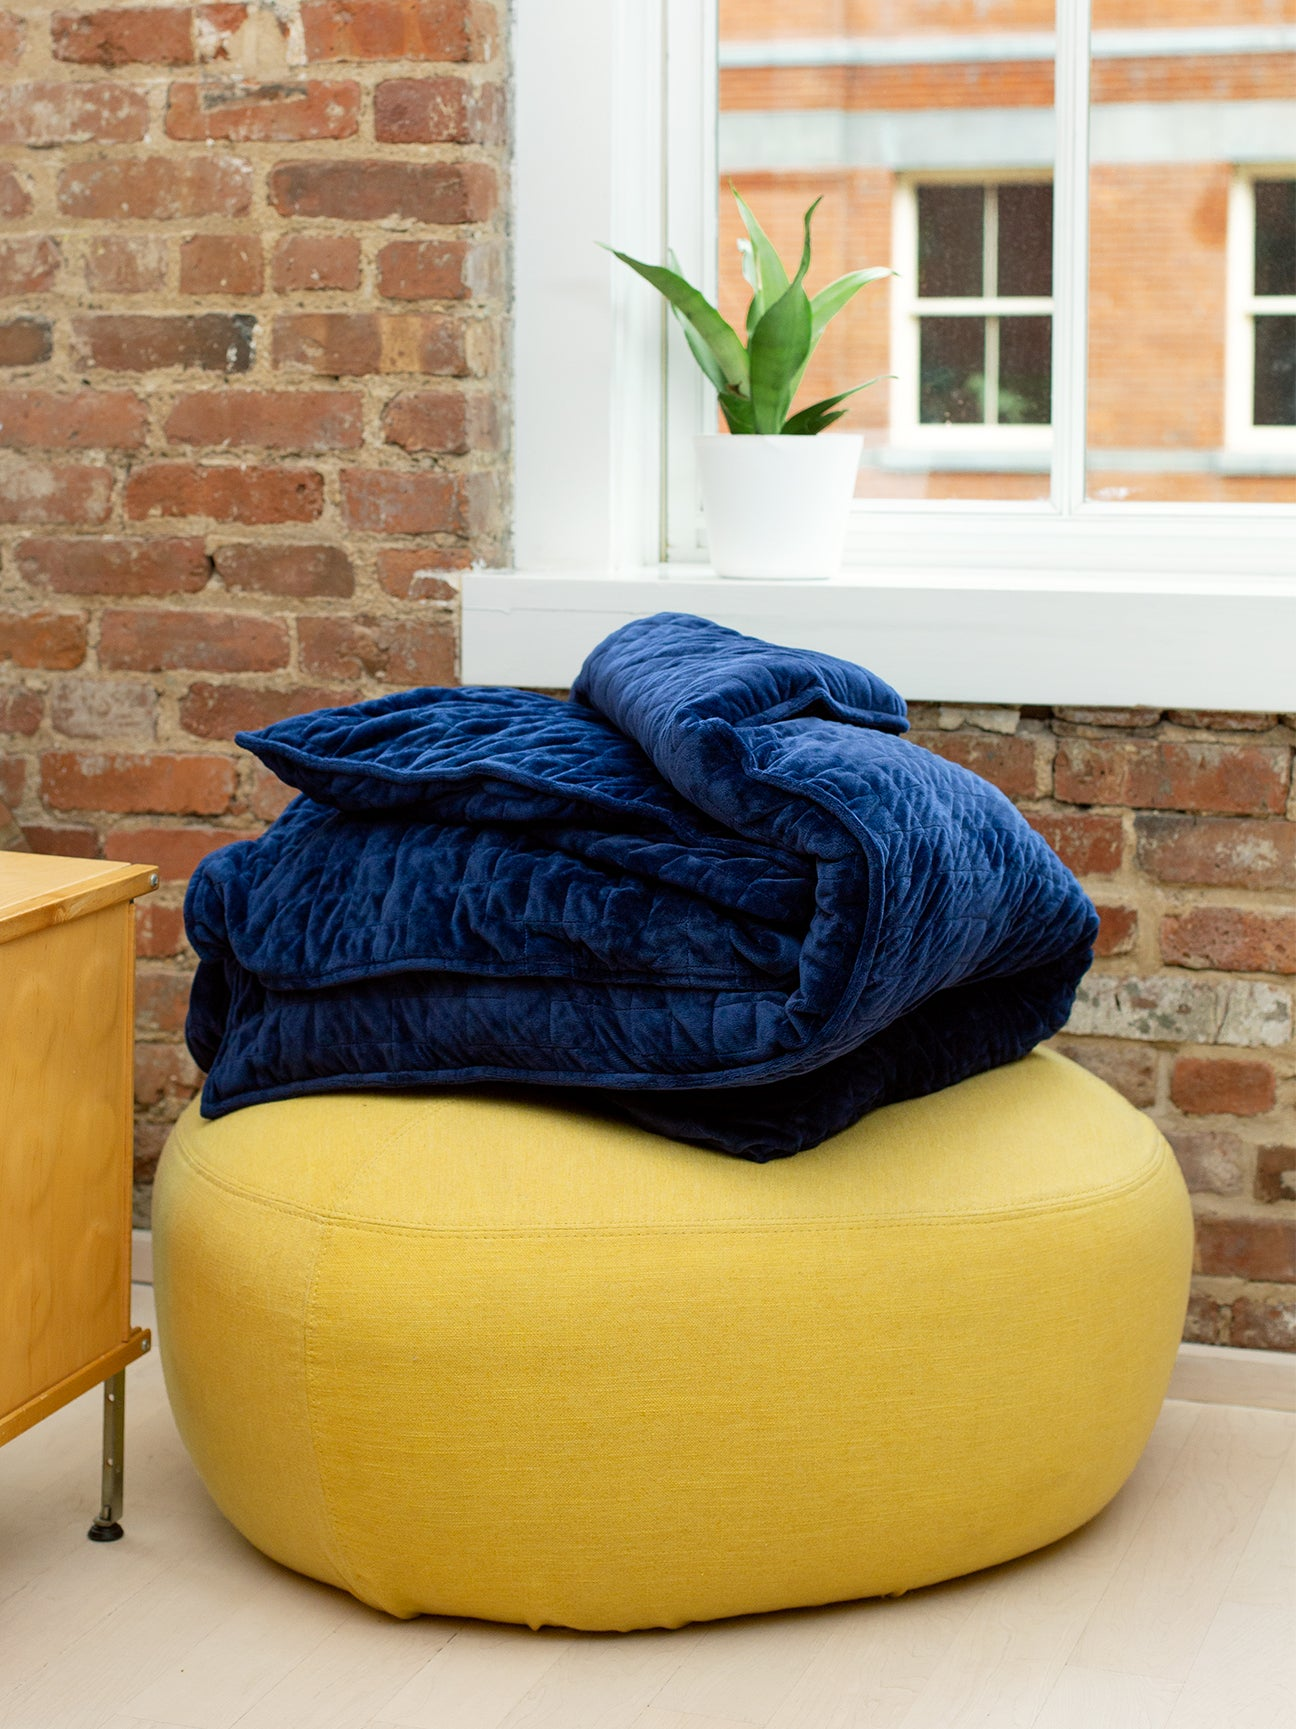 Yellow pouf with blue blanket.